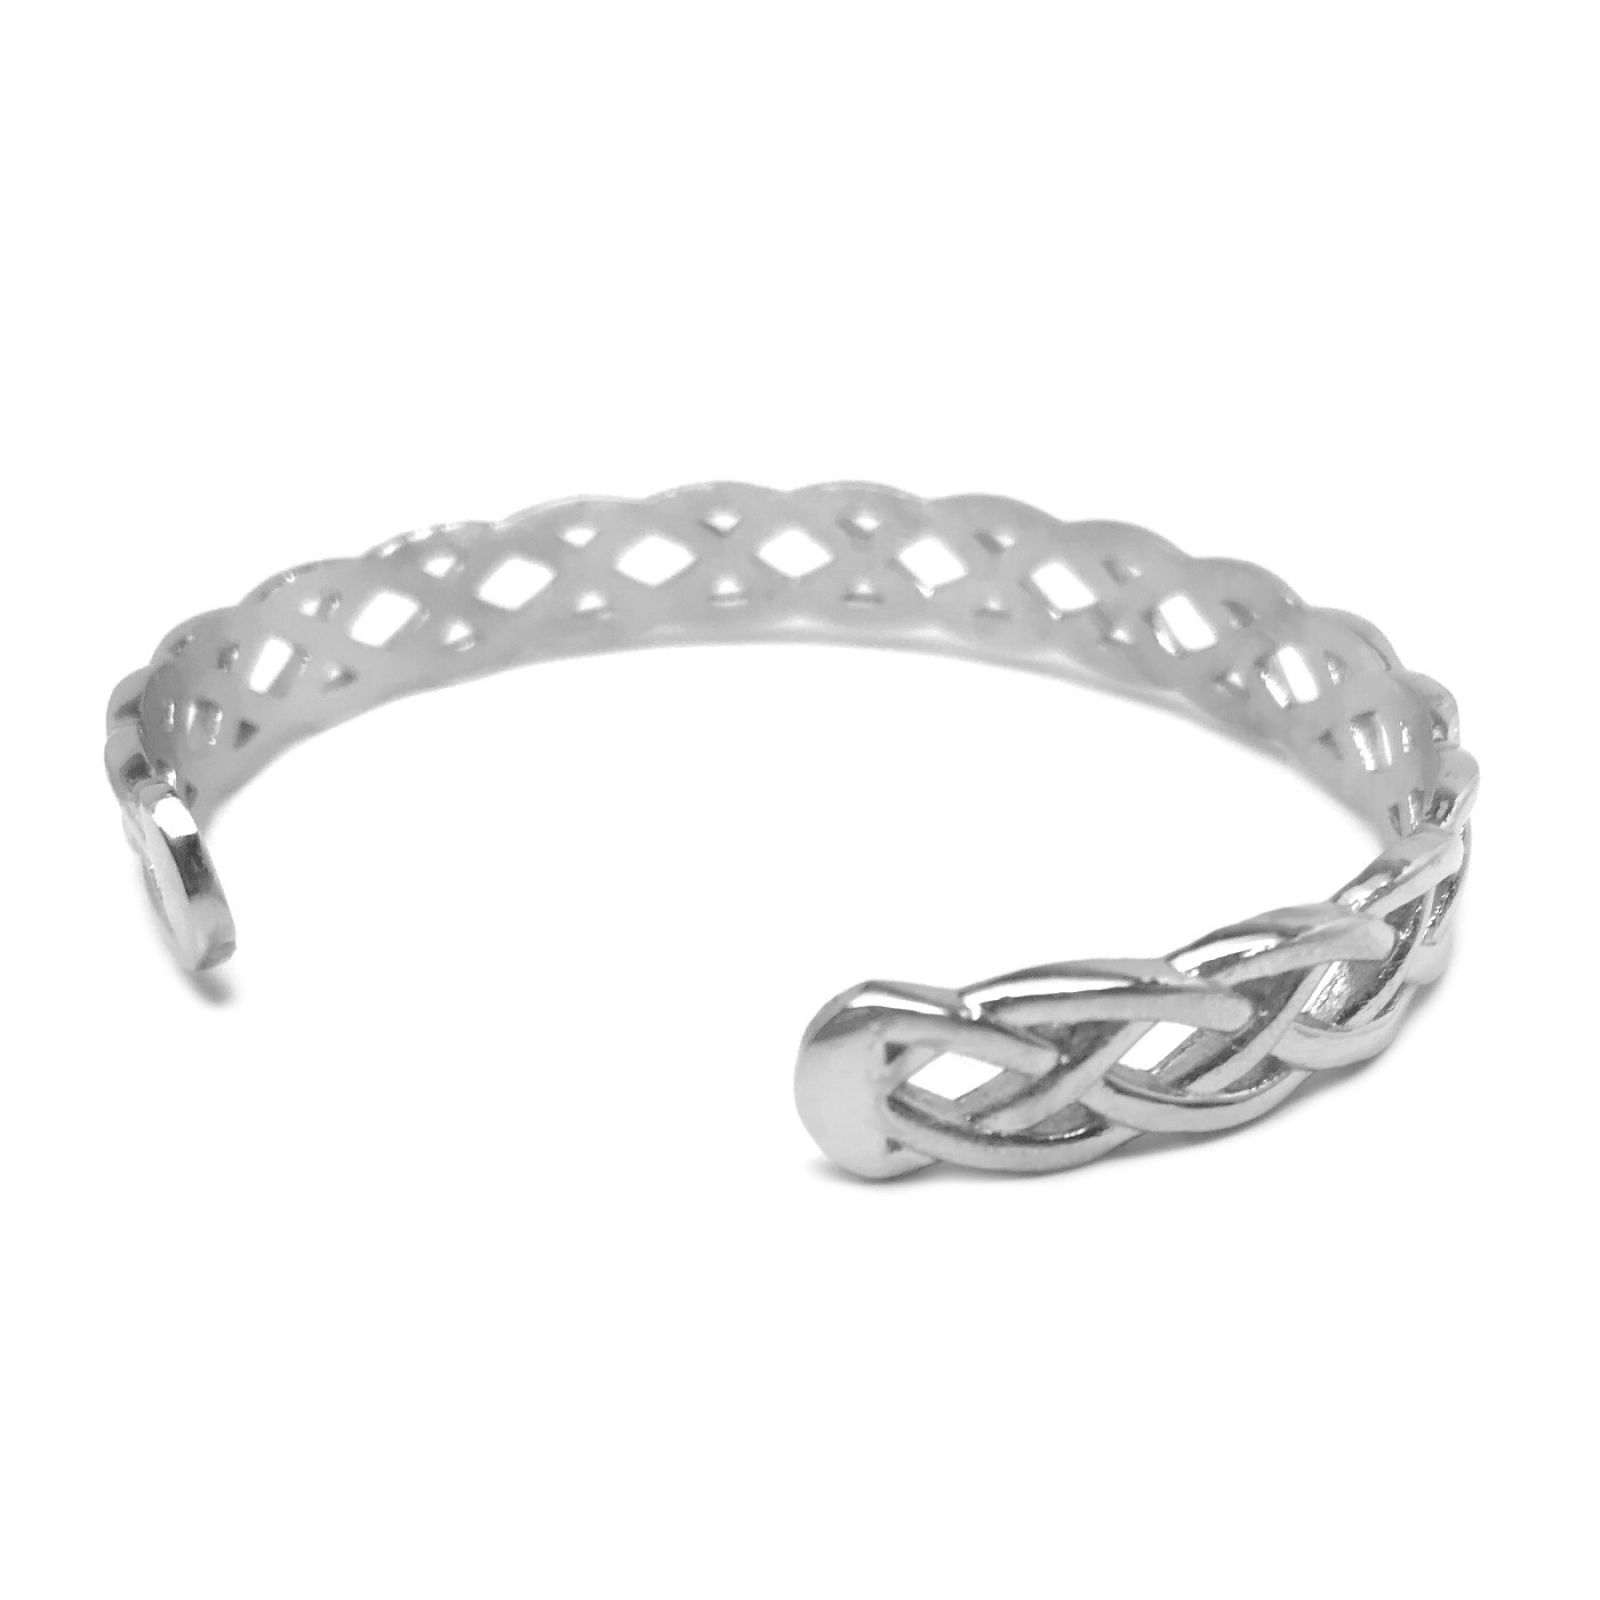 Unique Christmas Gifts for Women Jewelry Trends Silver Cuff cc29a75079